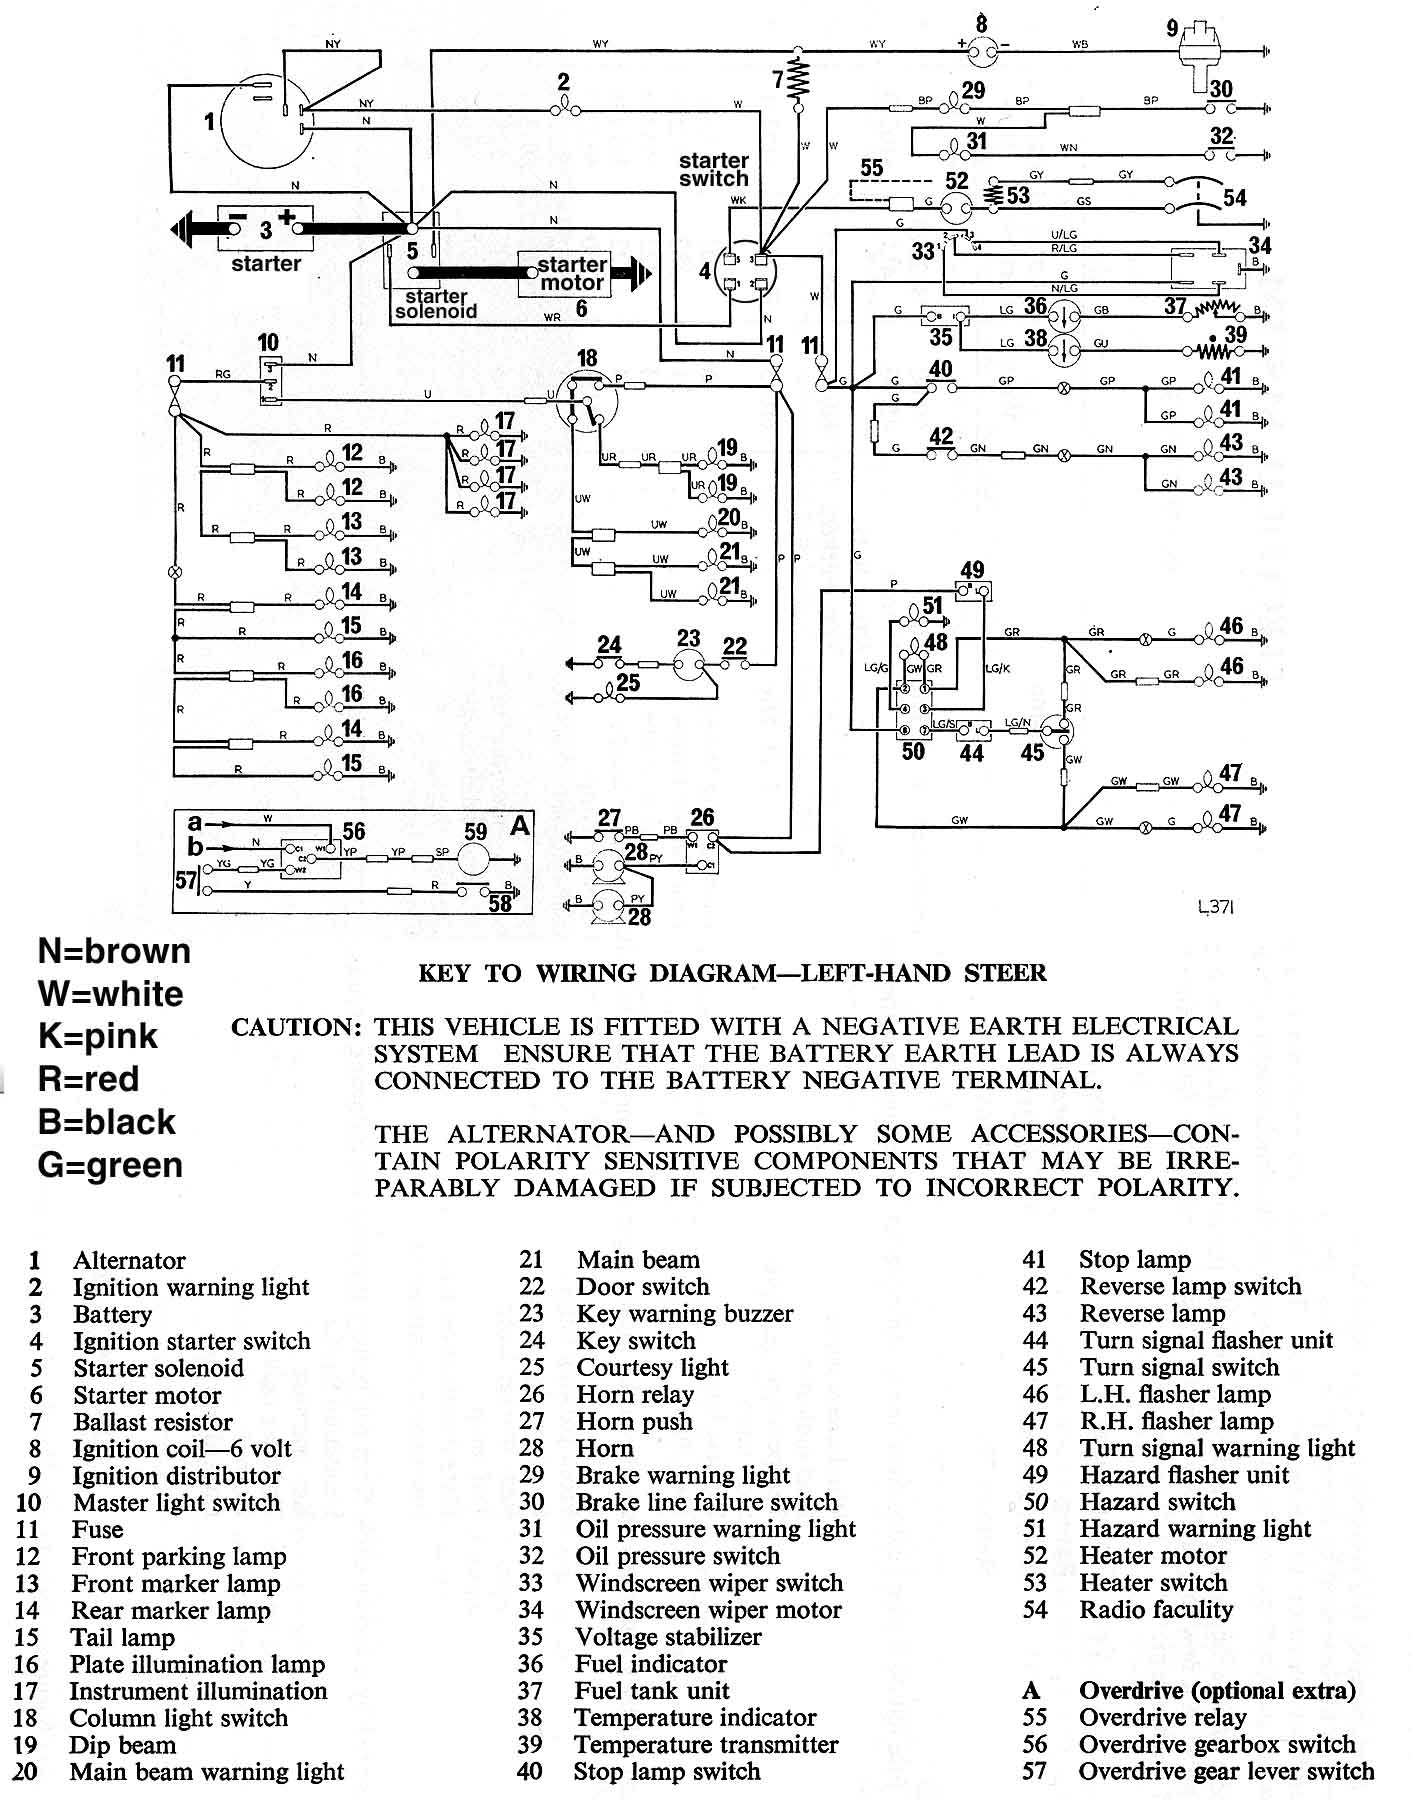 Auto Manual Blog March 2018 Fiat Stilo Fuse Box Diagram Ebook Haynes Wiring Legend Gibson Guitar